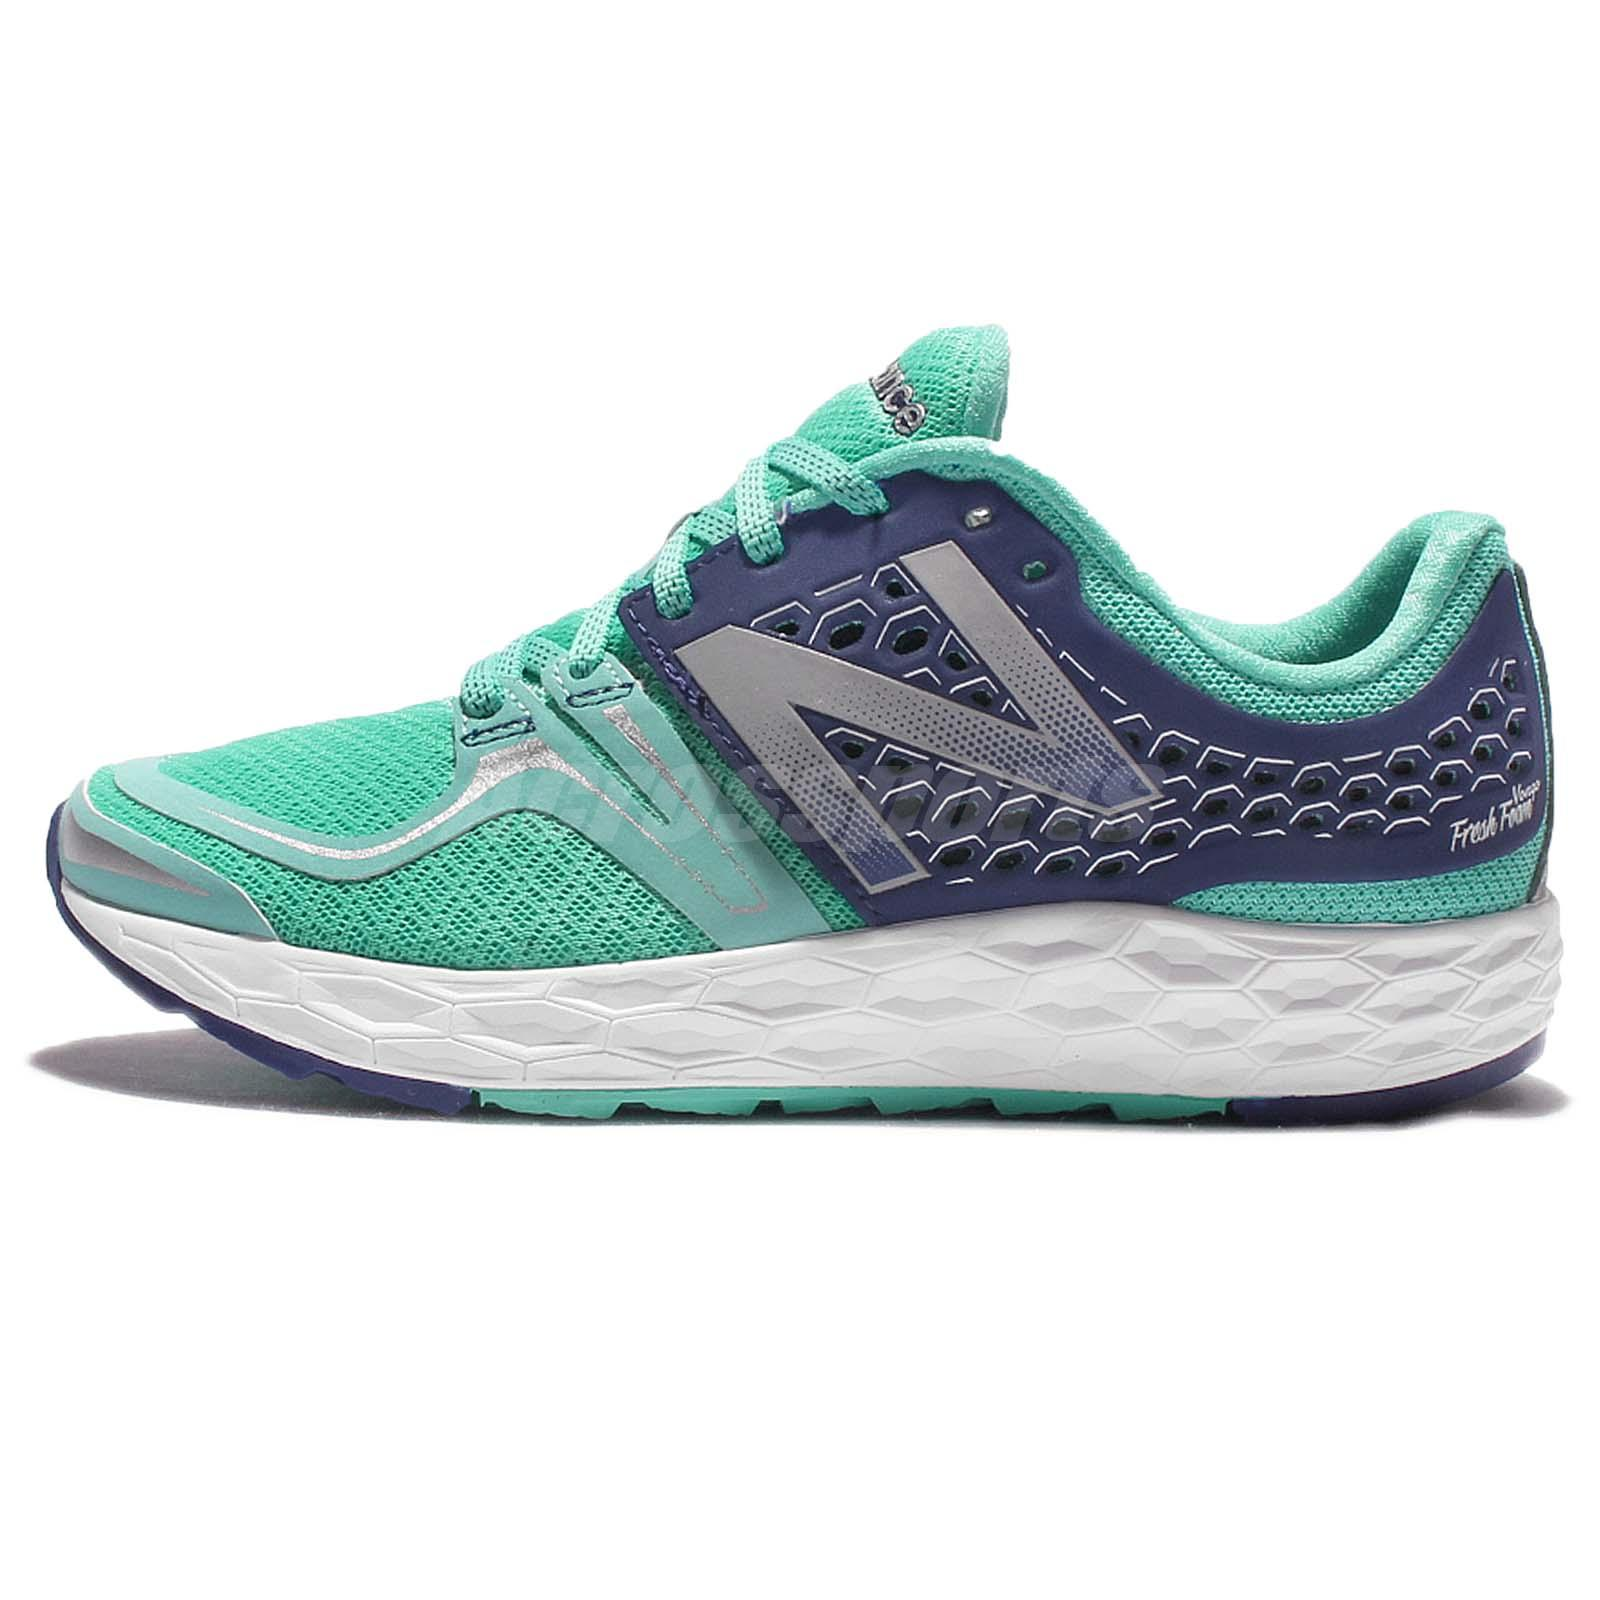 New Balance WVNGOBY D Wide Fresh Foam Vongo Green Womens Running Shoes  WVNGOBYD